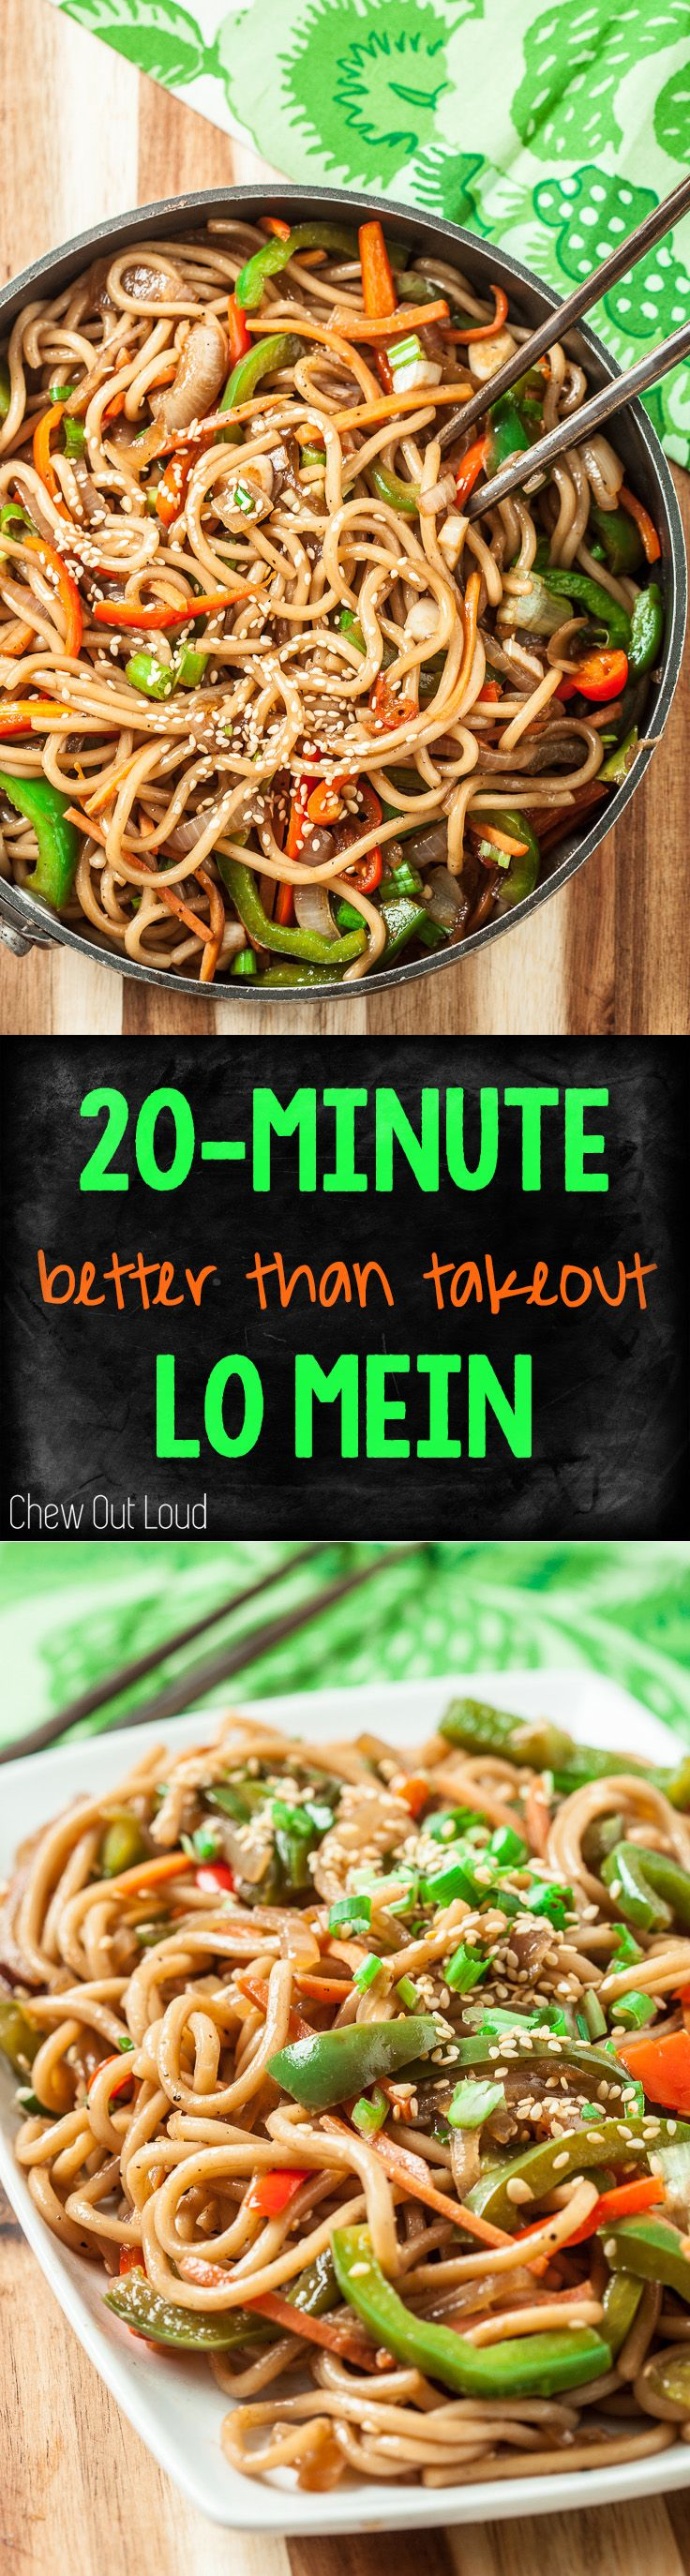 20-Minute Lo Mein. WAY Better than Takeout. Healthy, clean, vegetarian (or not.) #lomein #asianfood #noodles #pasta www.chewoutloud.com